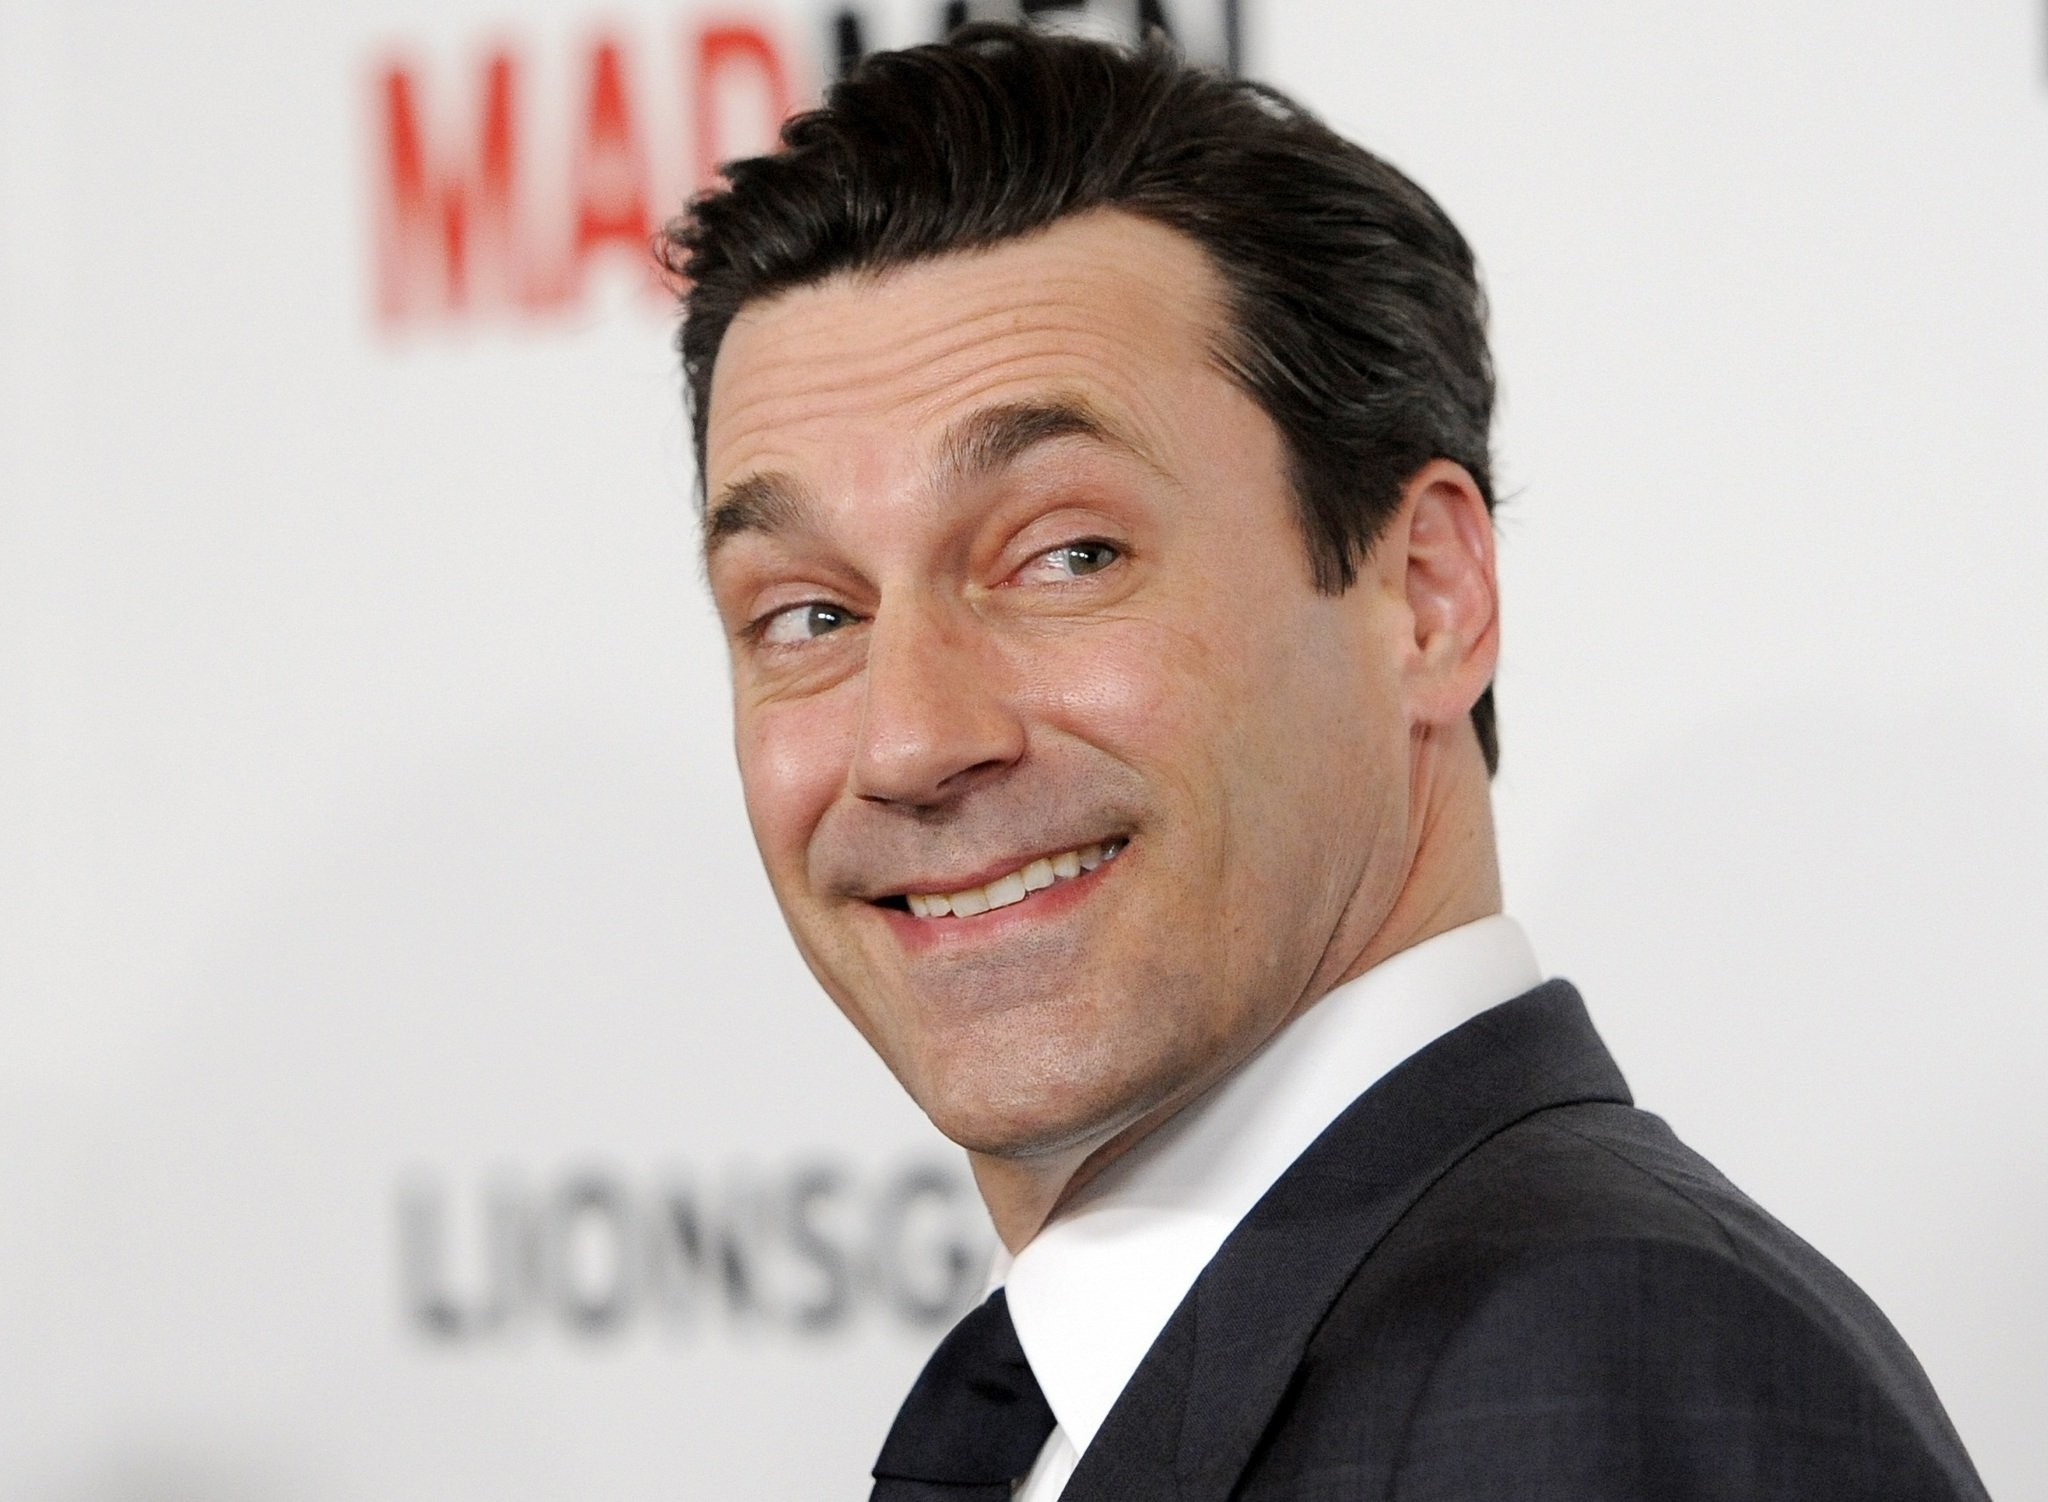 Res: 2048x1502, Jon Hamm Smile Wallpaper 57461